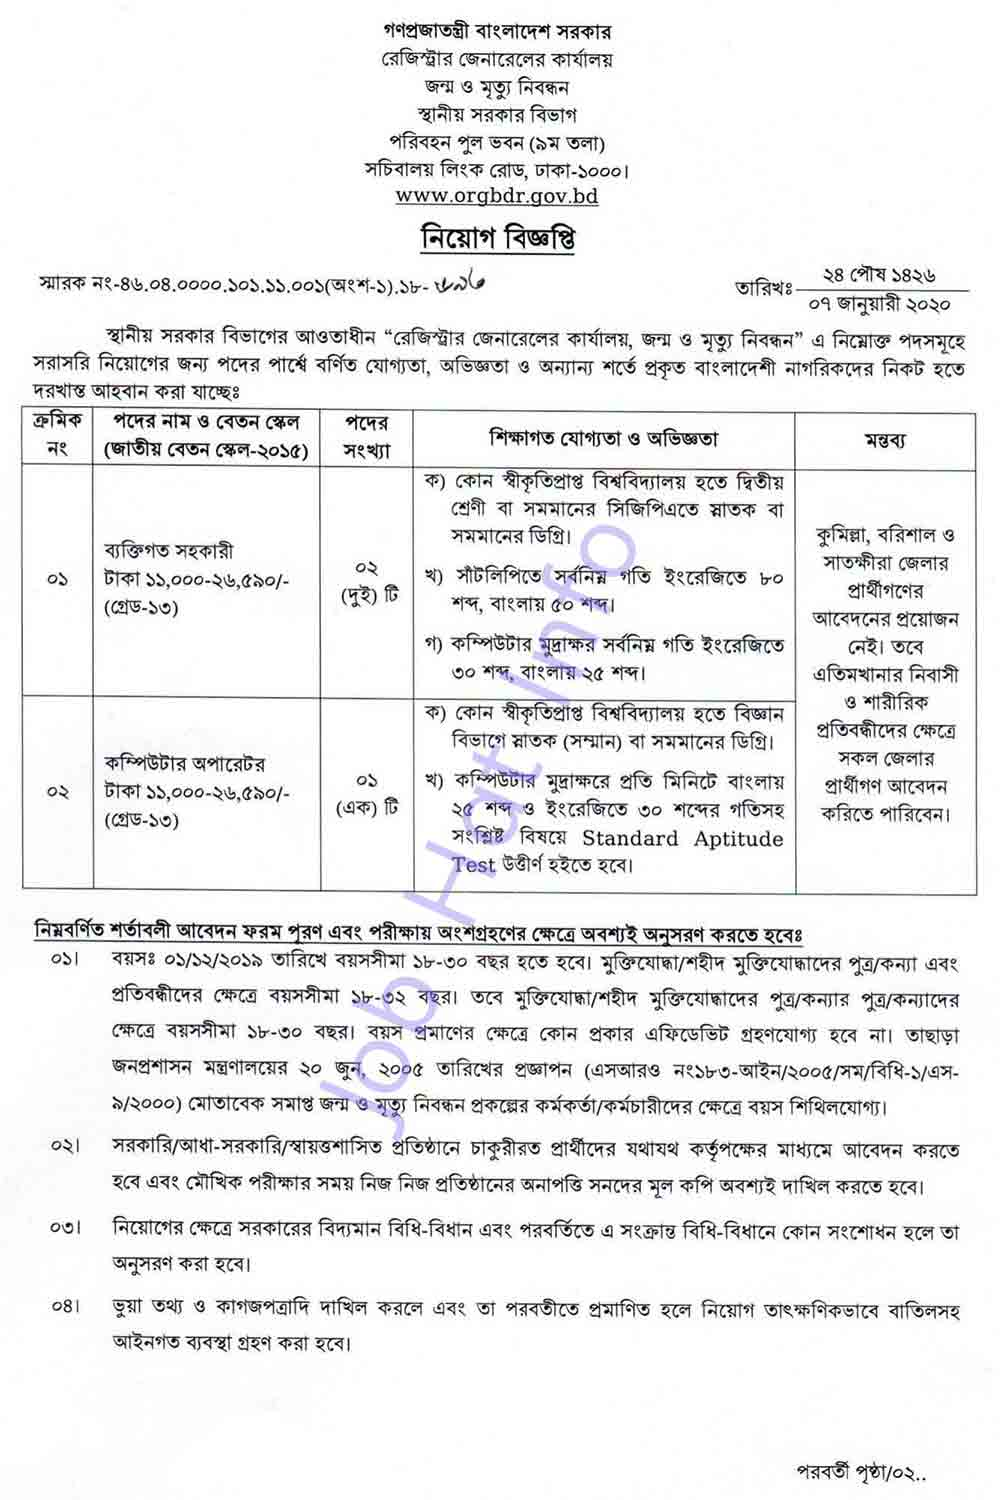 Job Circular at ORGBDR Apply Online-teletalk.com.bd 1